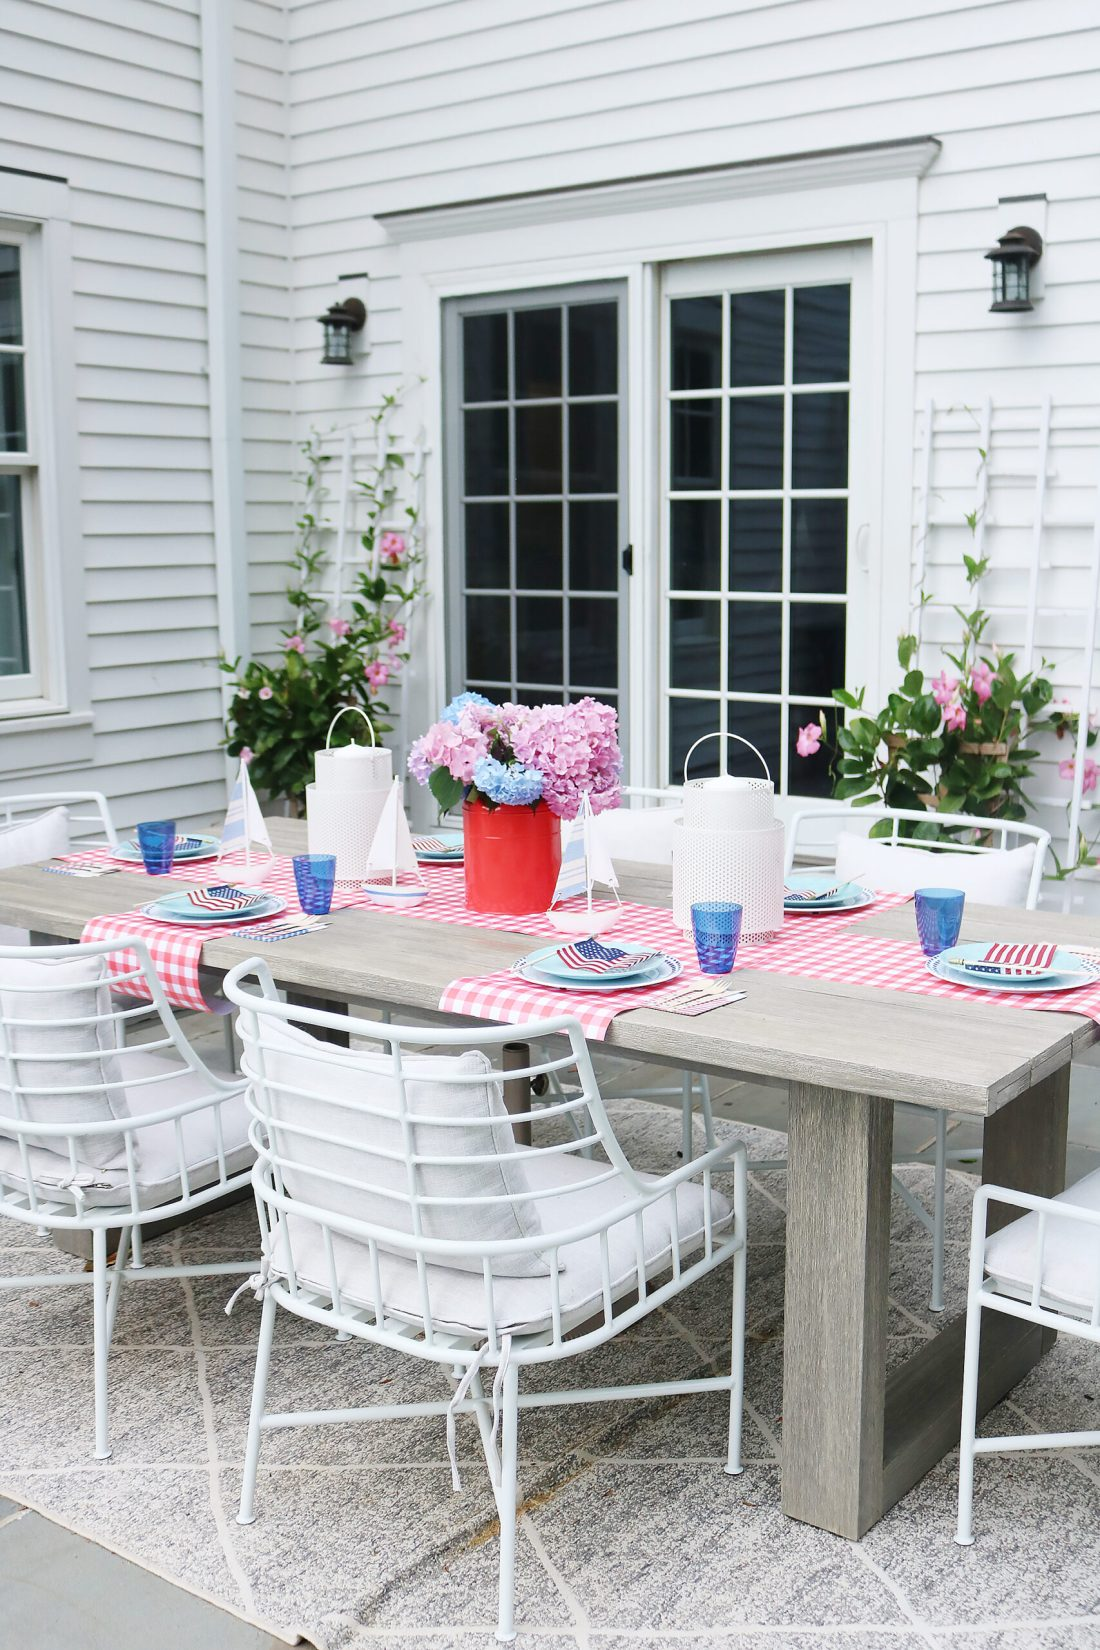 This year host a 4th of July backyard party and sharing simple budget-friendly decorating tips || Darling Darleen Top CT Lifestyle Blogger #4thofjuly